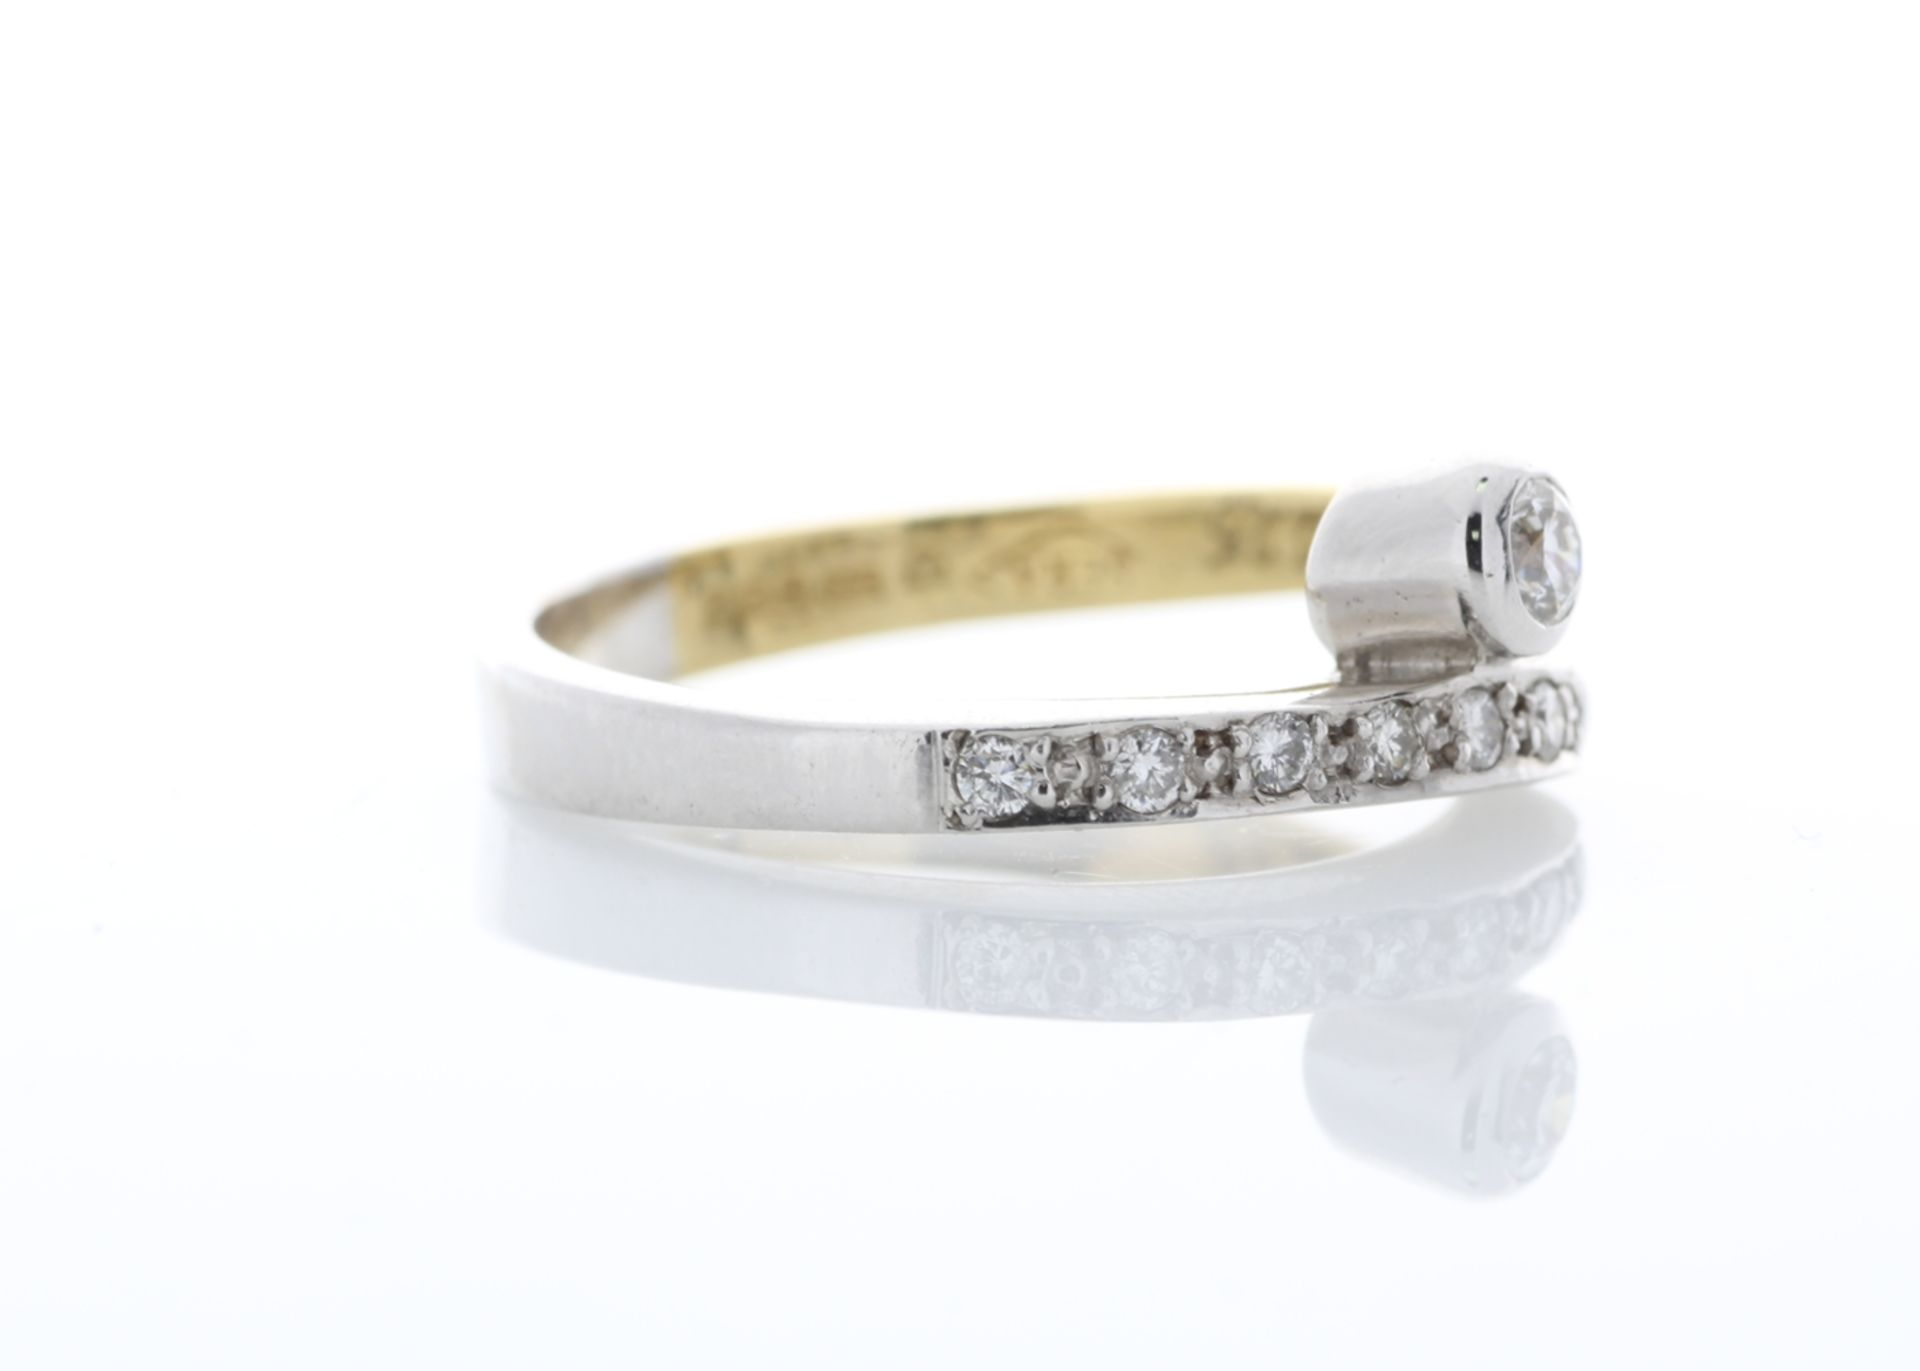 18ct Single Stone Rub Over With Stone Set Shoulders Diamond Ring 0.11 Carats - Valued by AGI £1, - Image 4 of 5